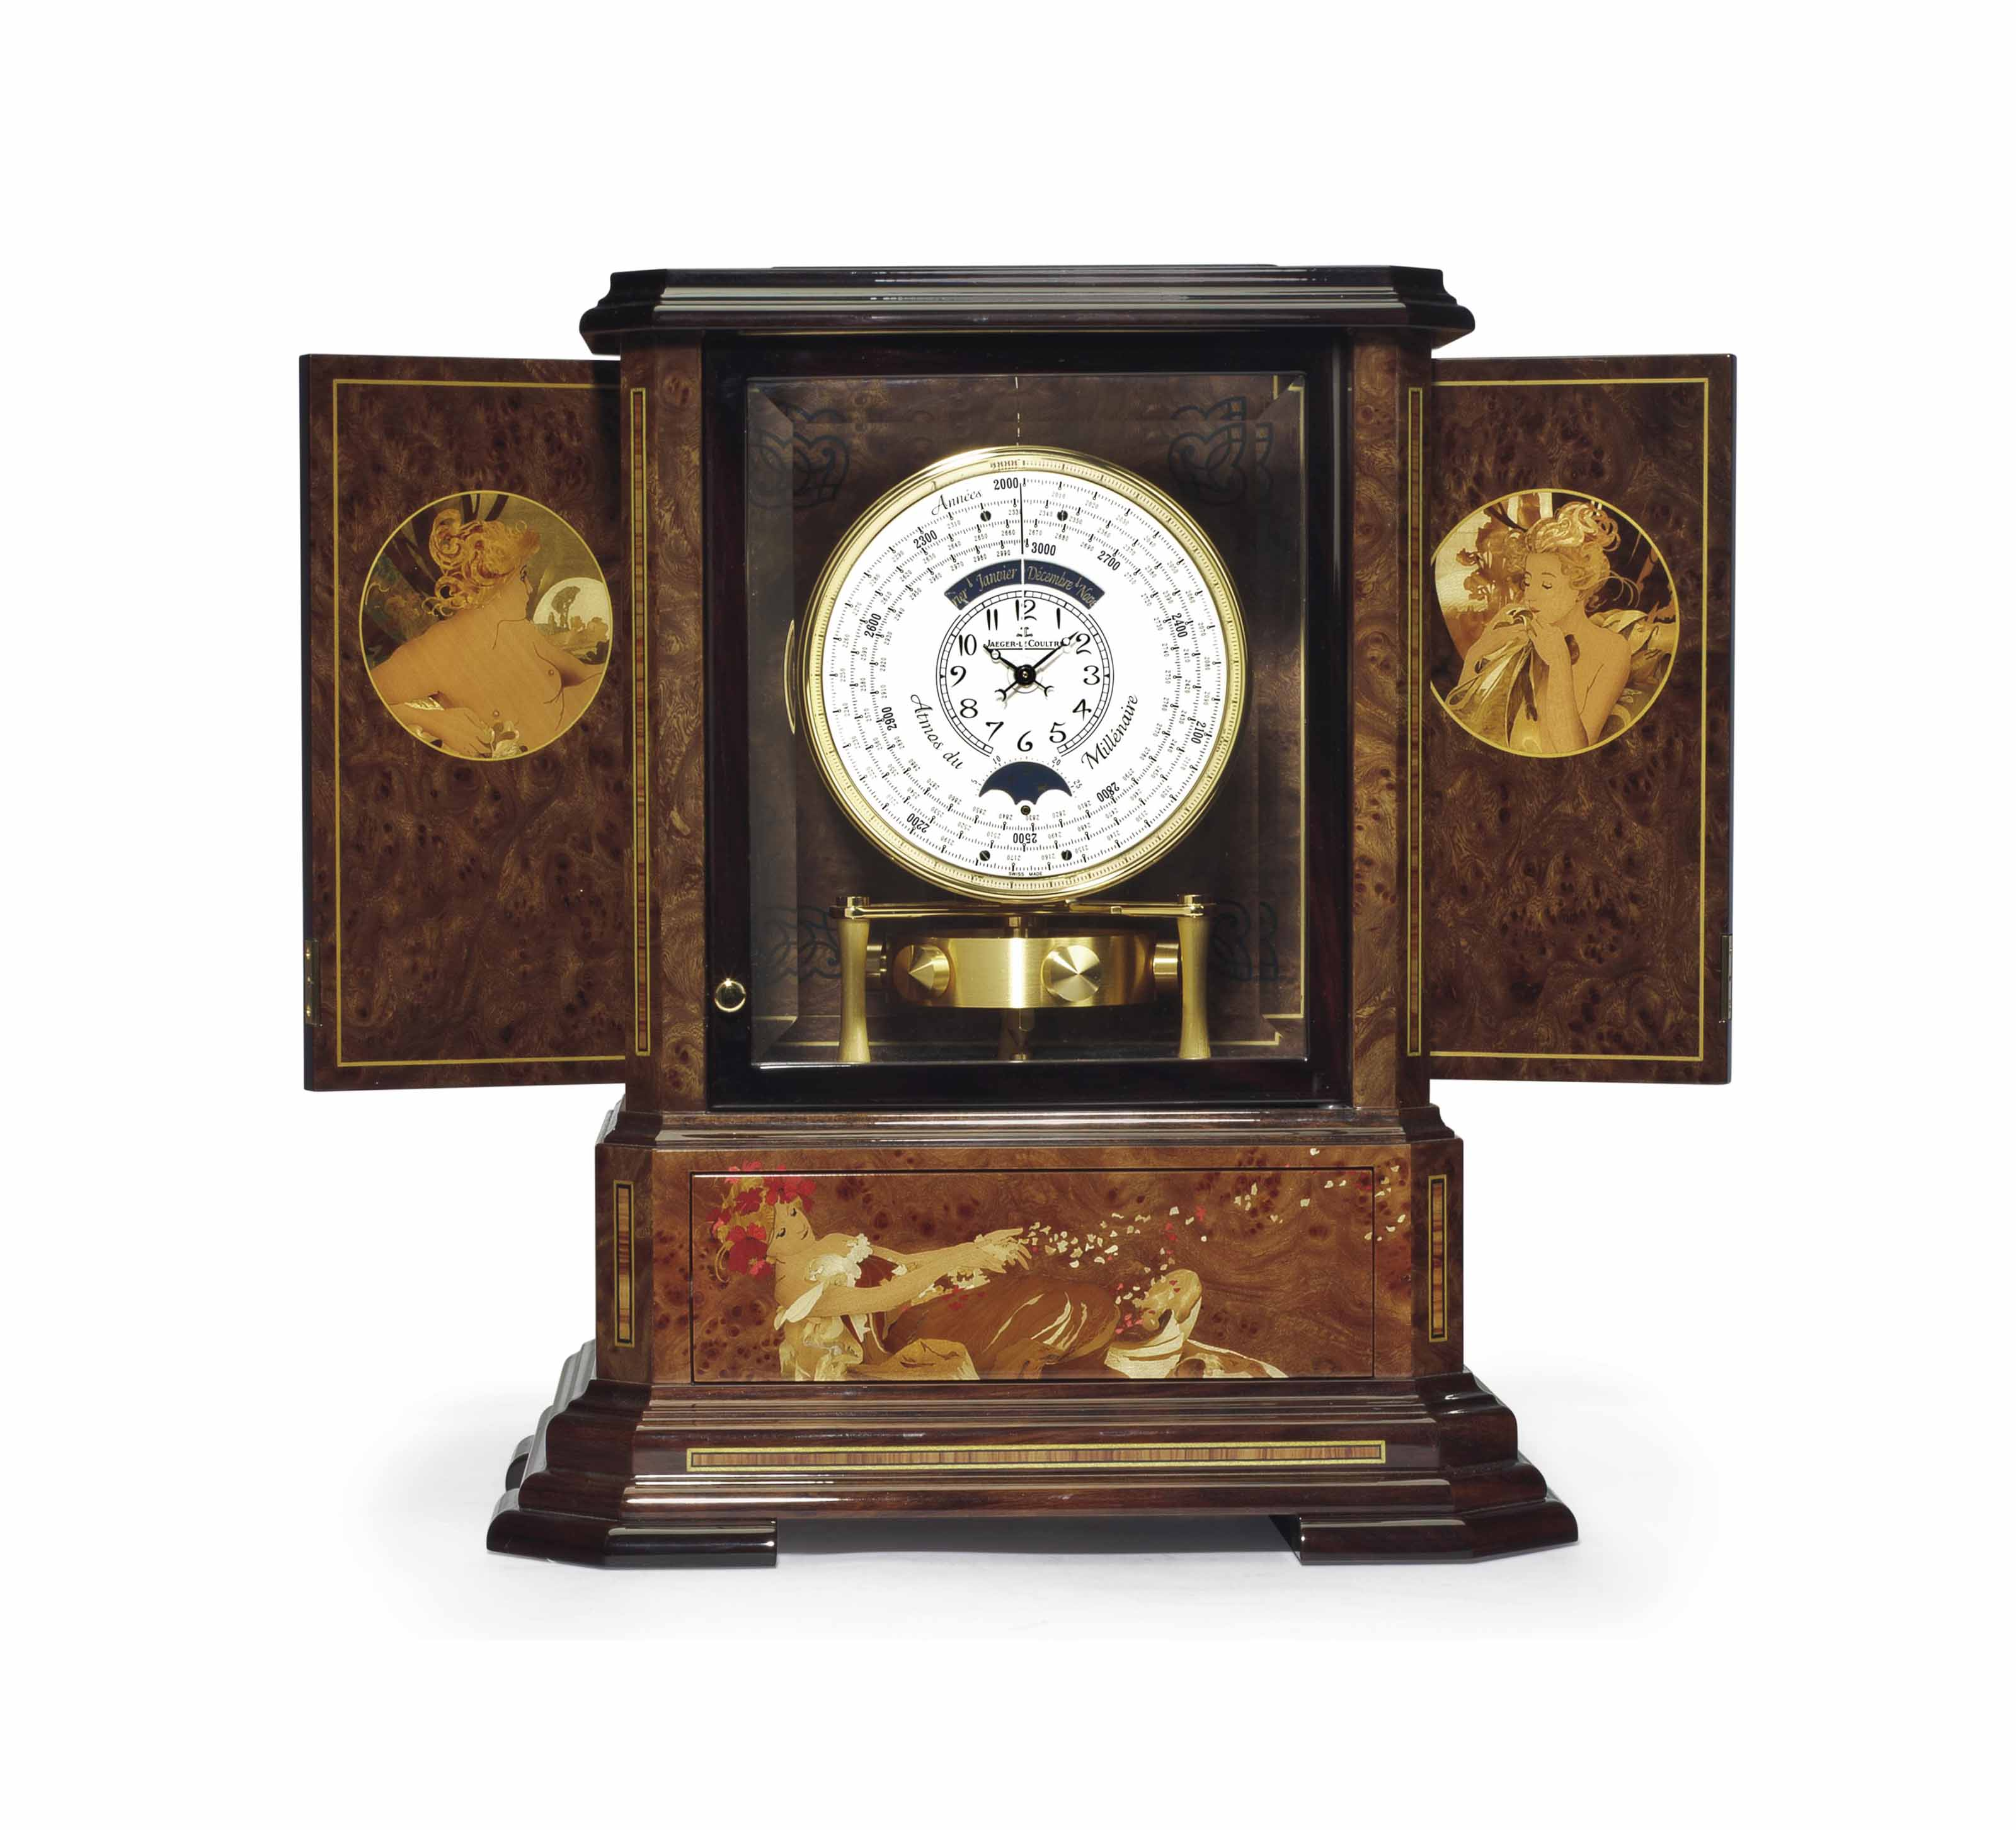 Jaeger-LeCoultre. An Exceptional Limited Edition Wood, Glass and Gilt Barometric Driven Clock with 1000 Year Calendar In The Art Nouveau Style with Original Leather and Brass Bound Fitted Trunk